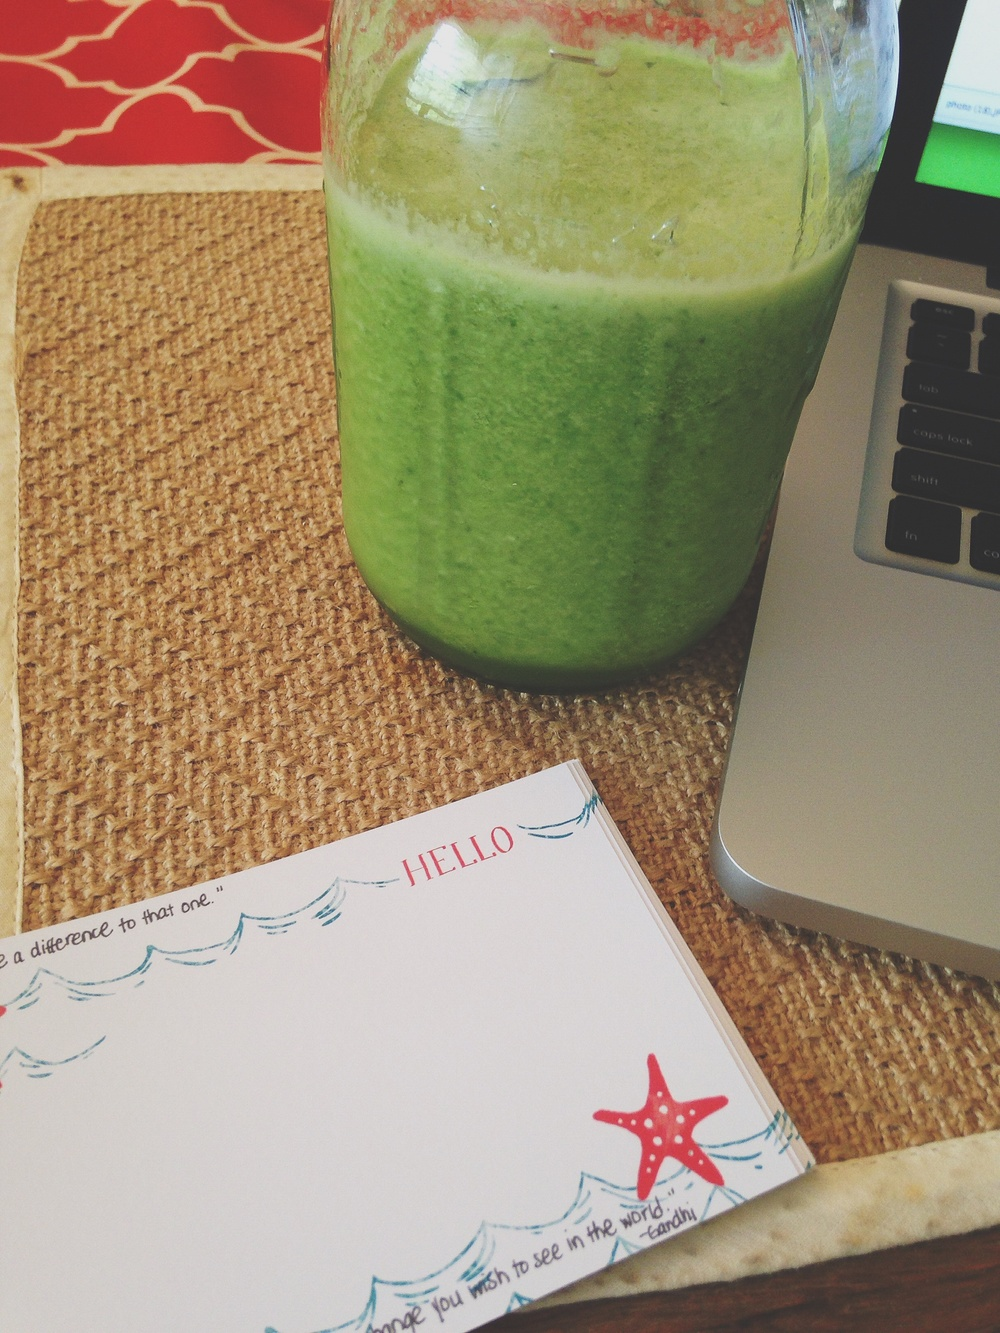 writing a card to each of my student leaders with a jar full of green juice